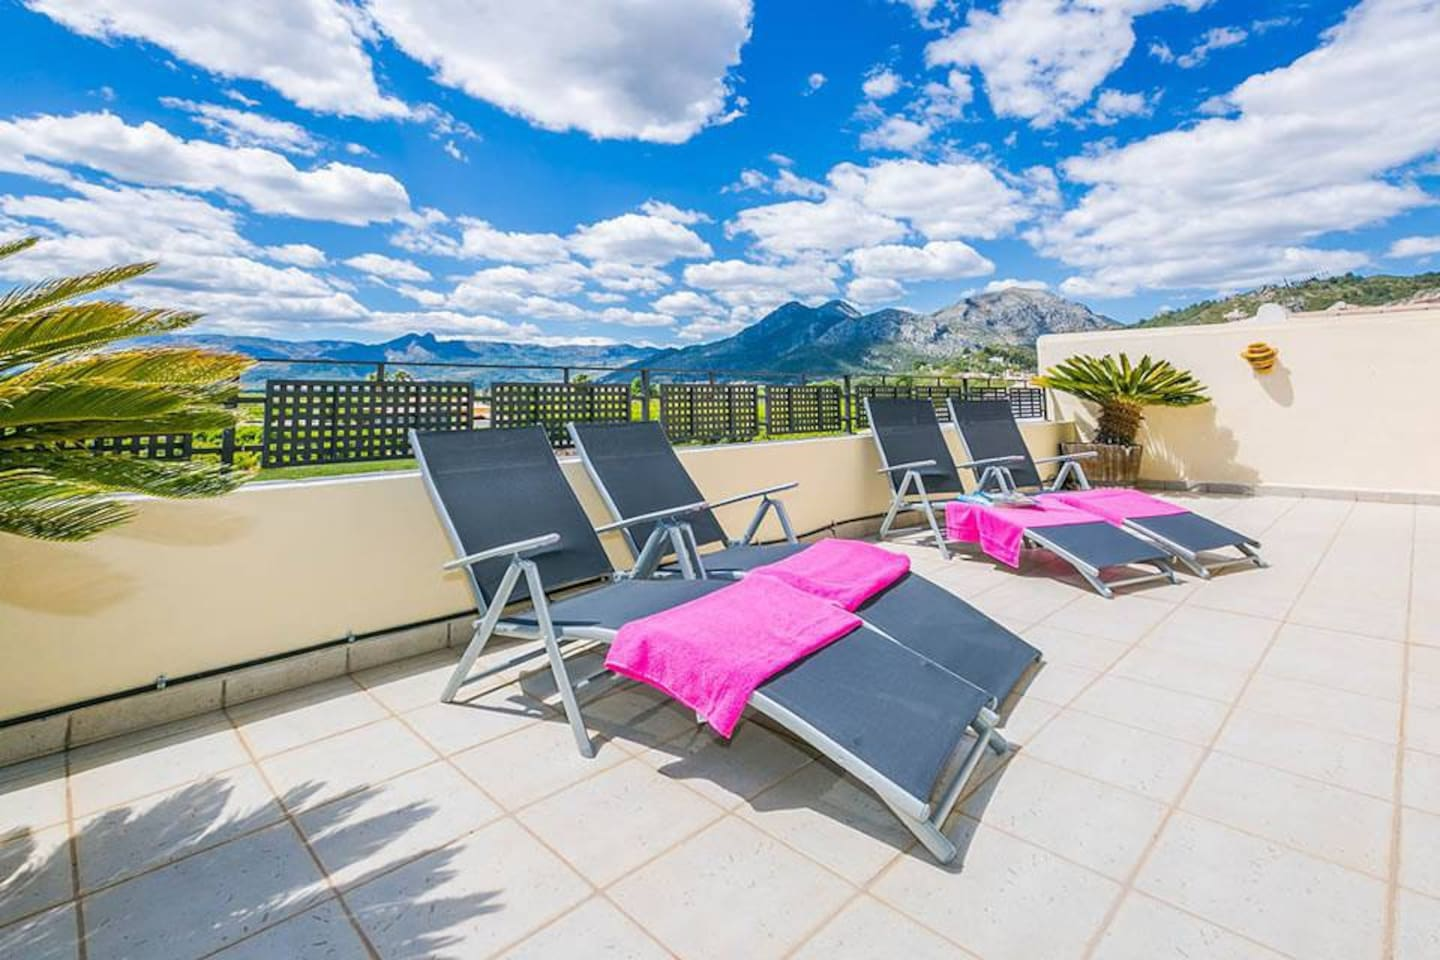 Relax on The South Facing Balcony With Fantastic Views Across the Orba Valley.